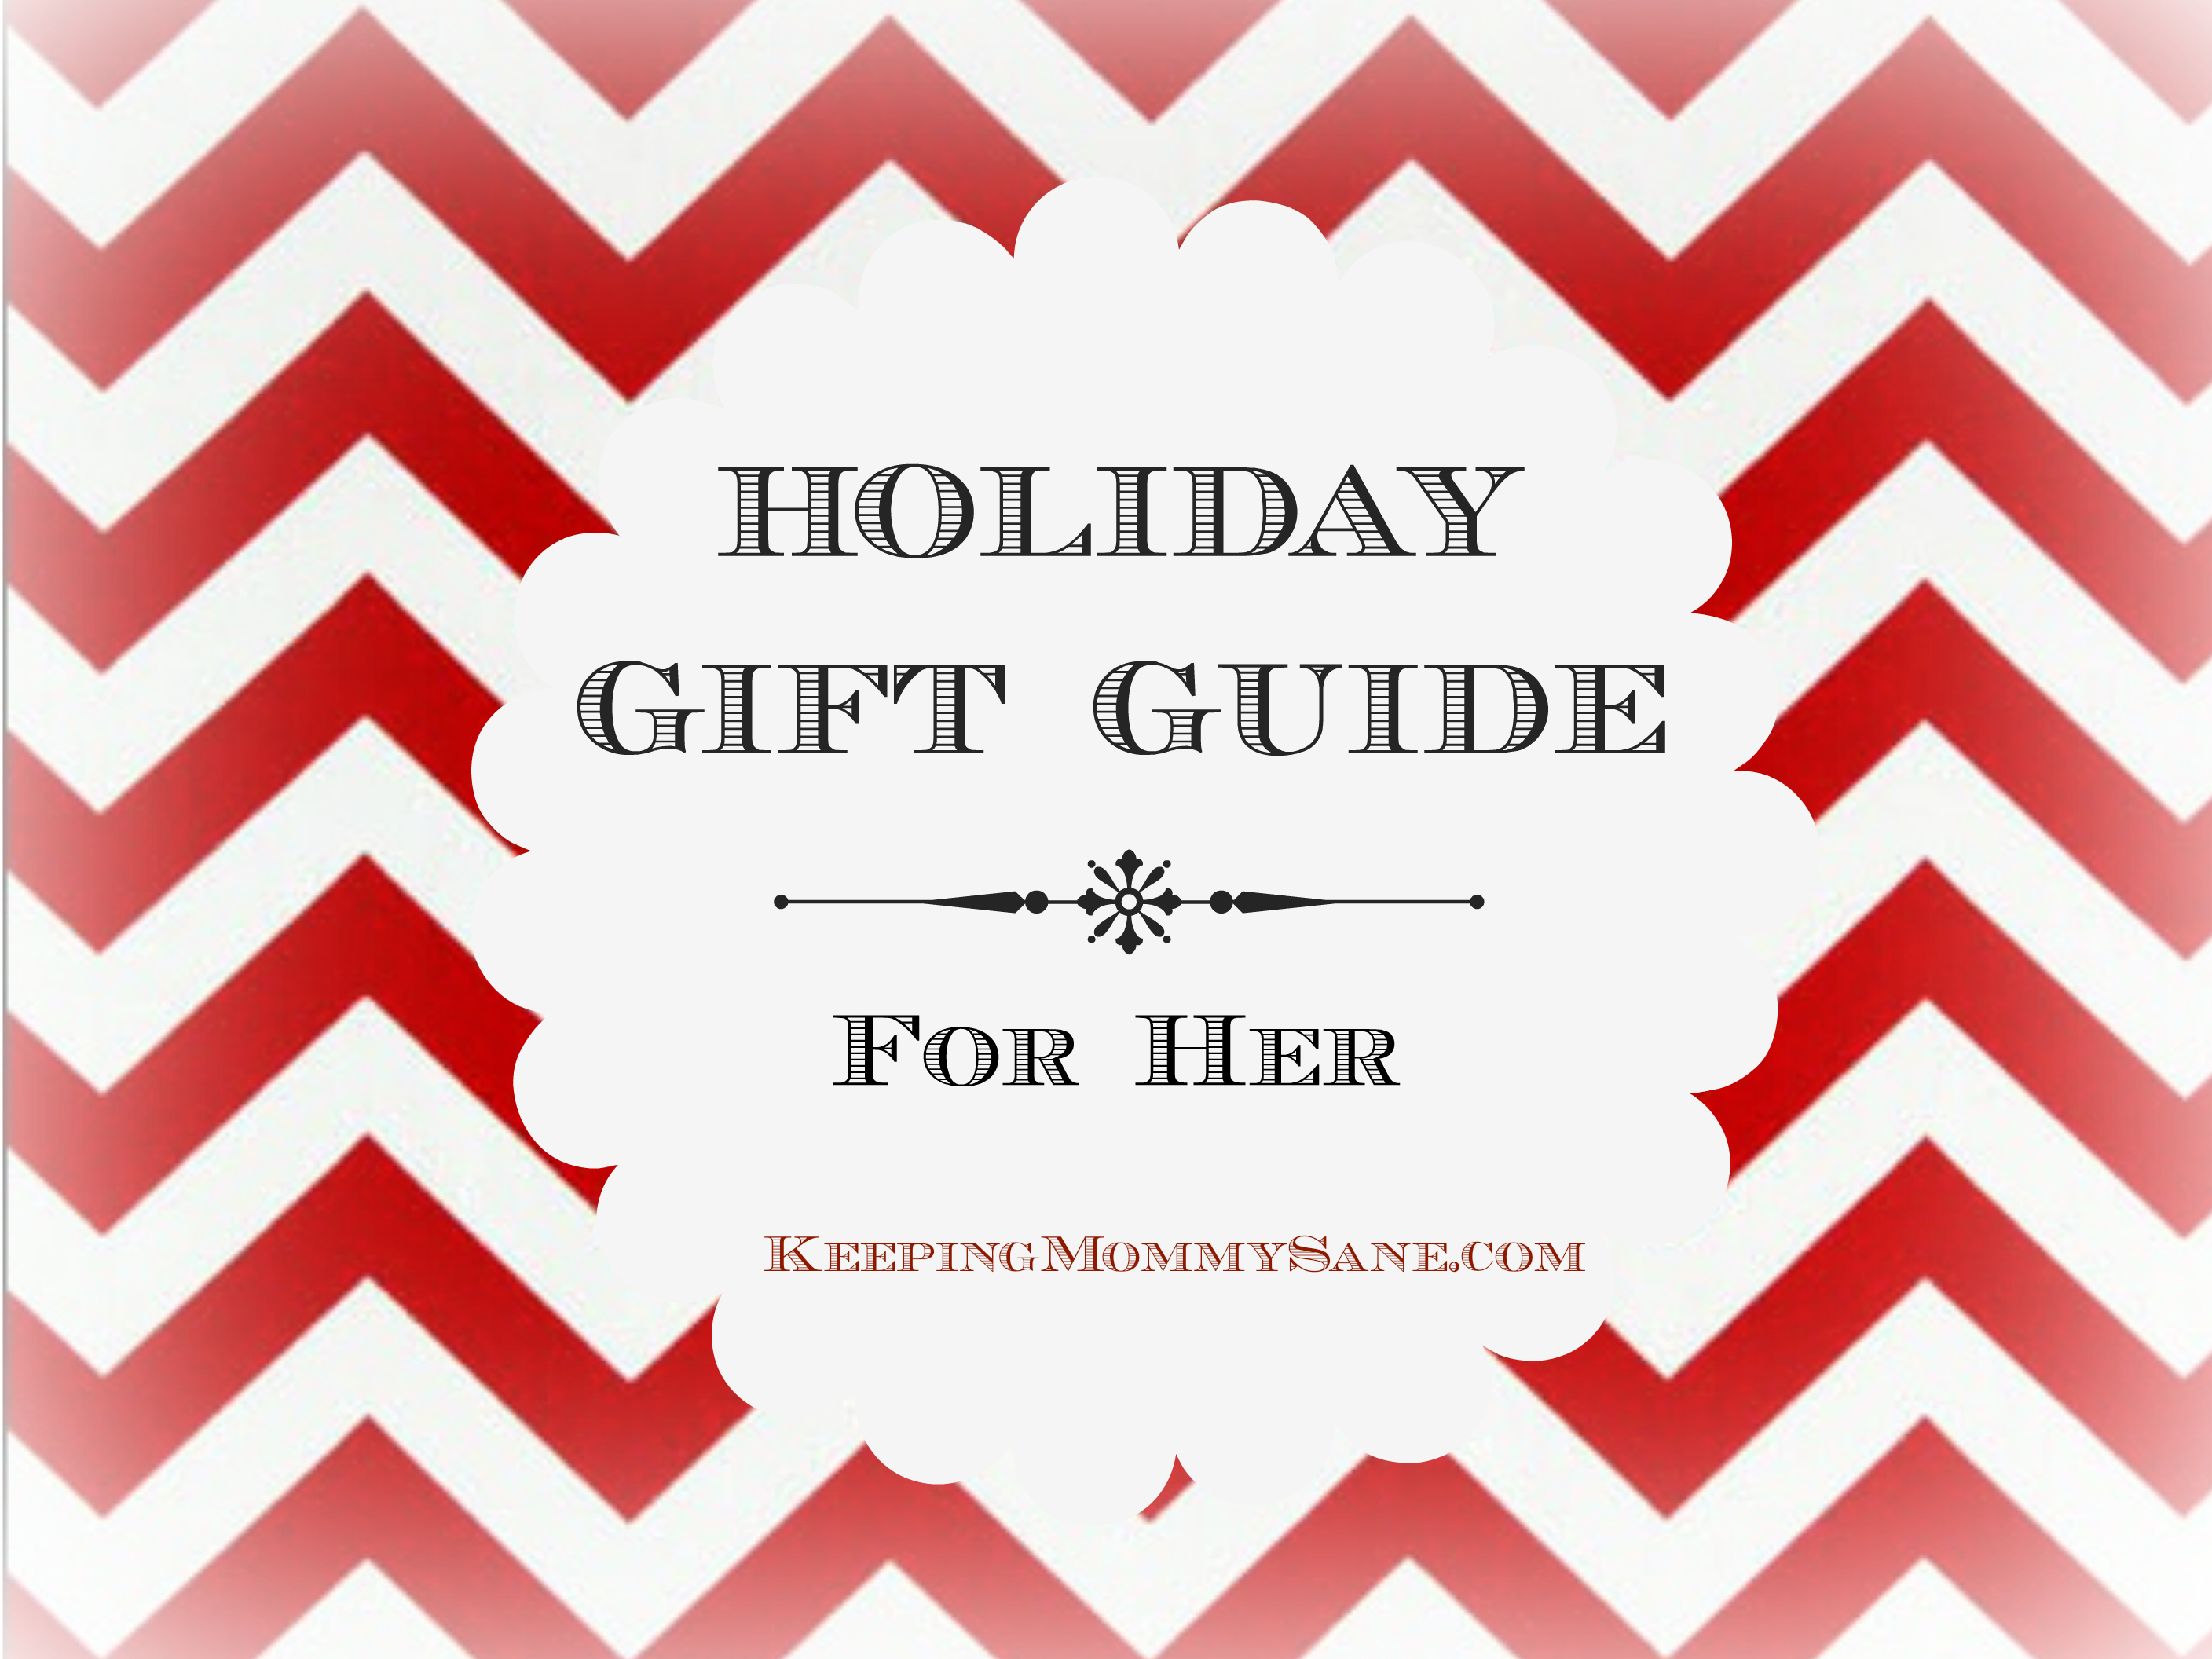 Holiday Gift Holiday Gift Guide 2012 Gifts